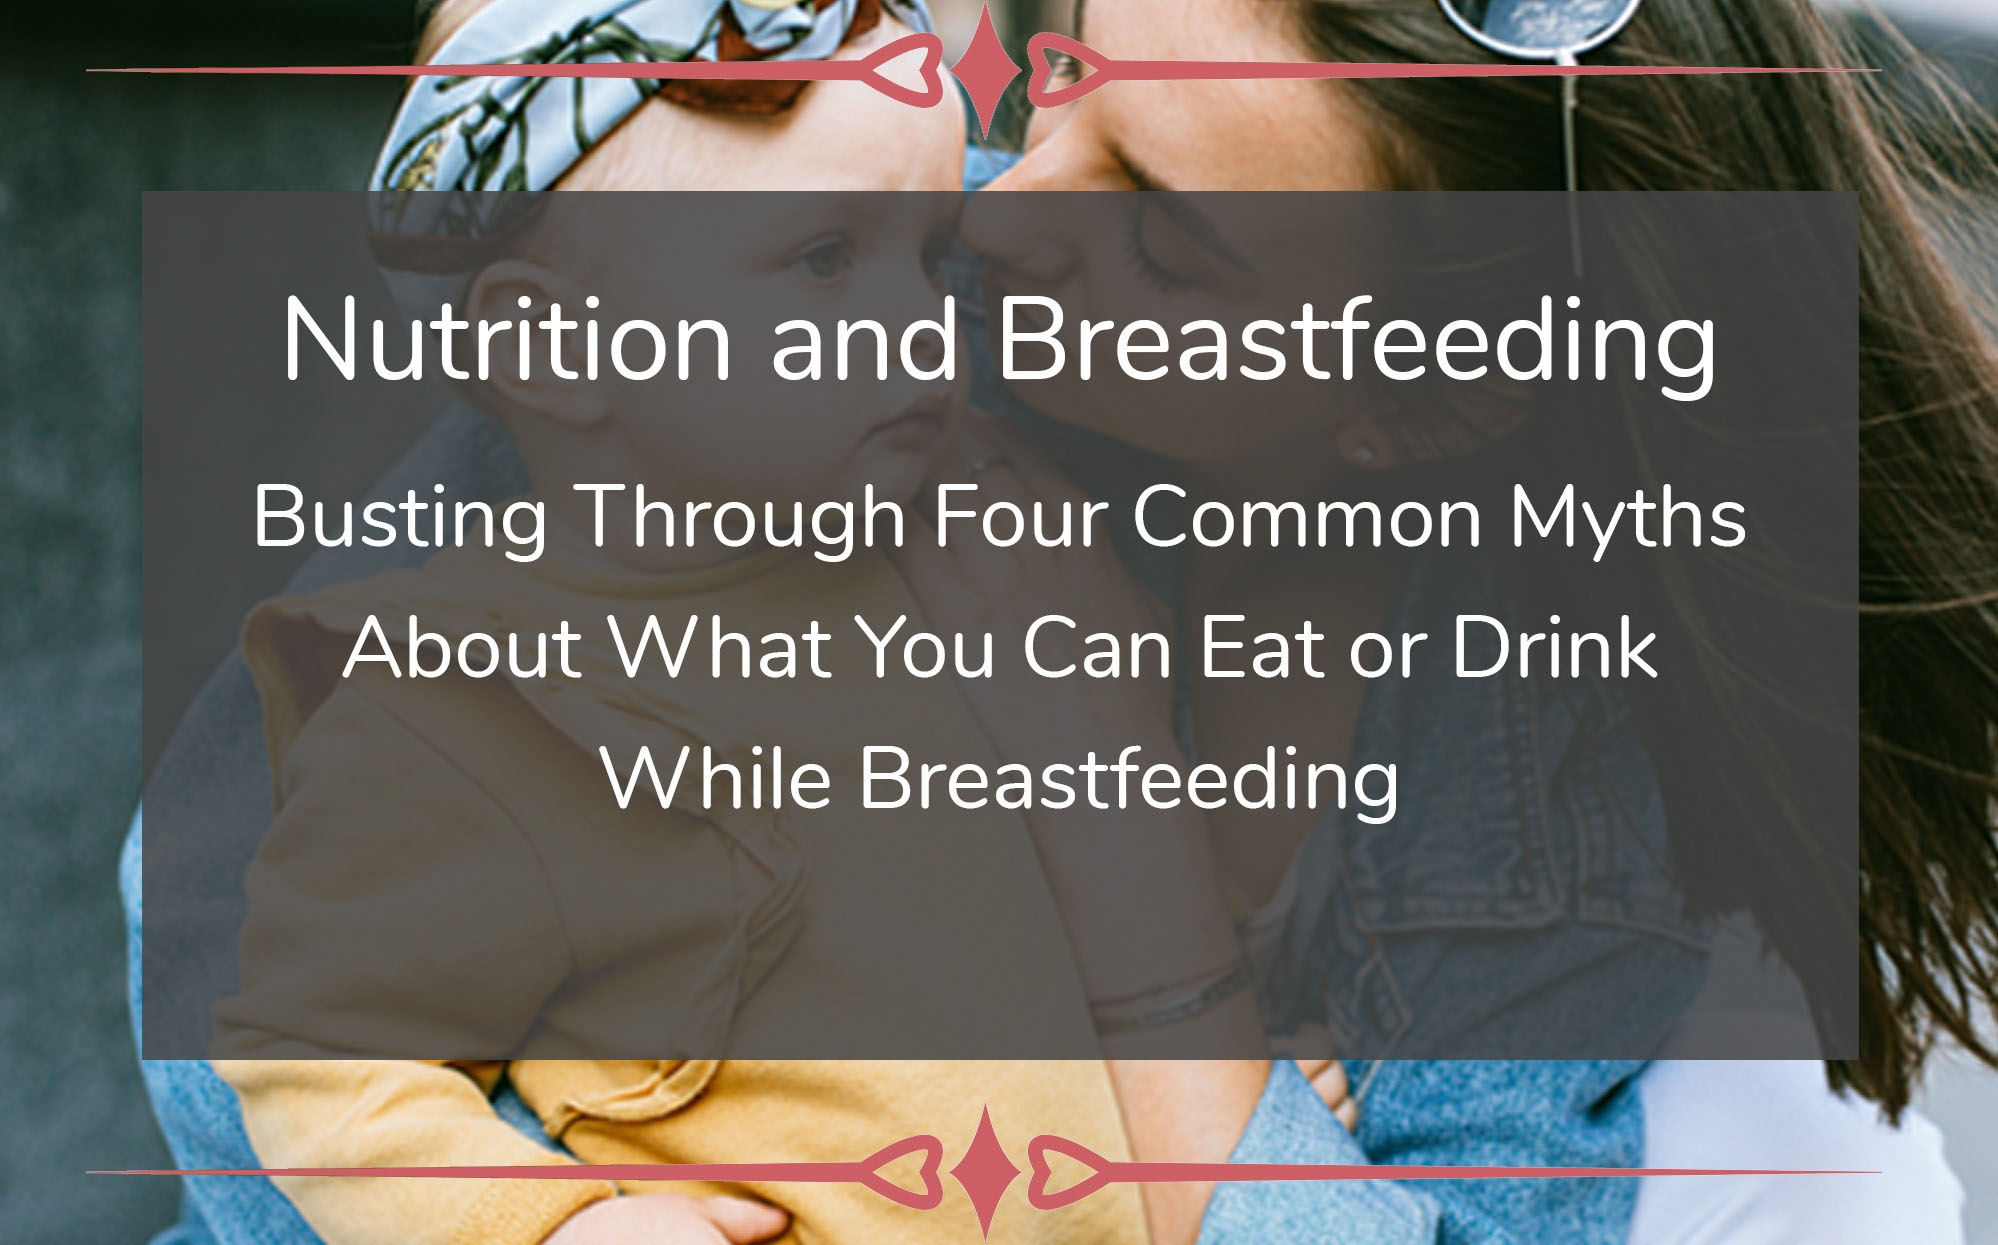 Nutrition and breastfeeding